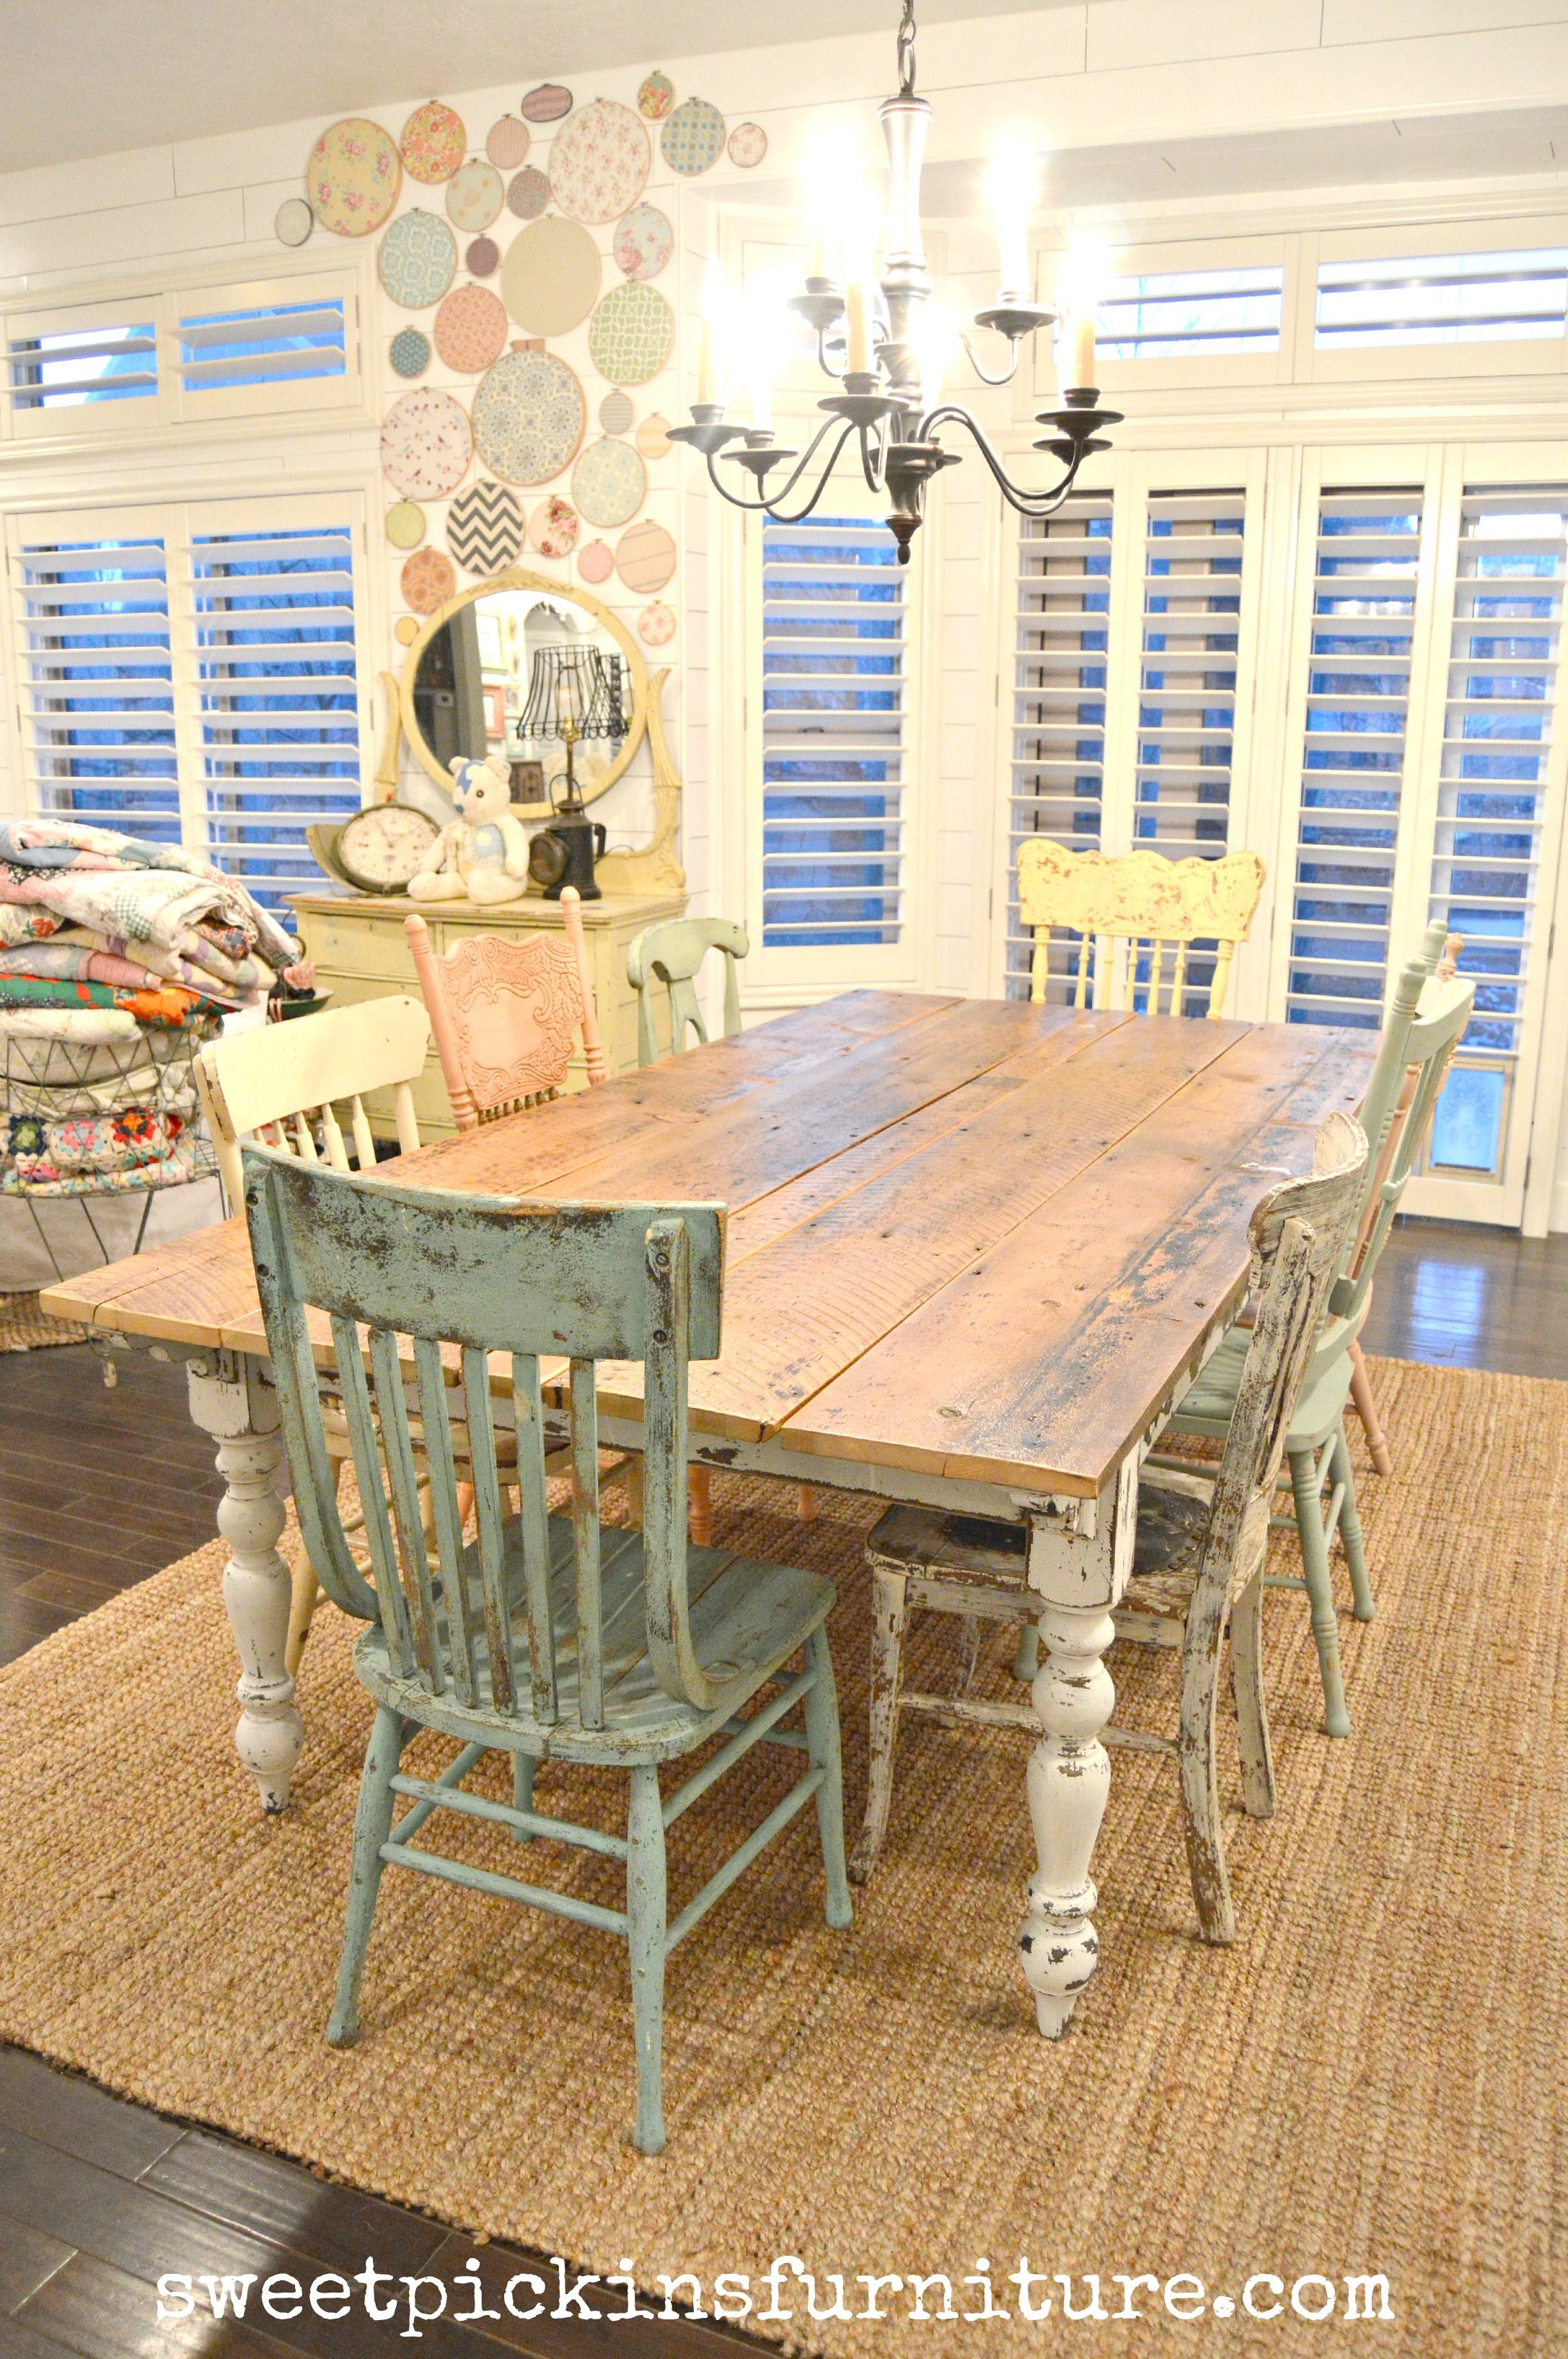 two seat kitchen table Zinc topped Table Mismatched Chairs in Rainbow Colors